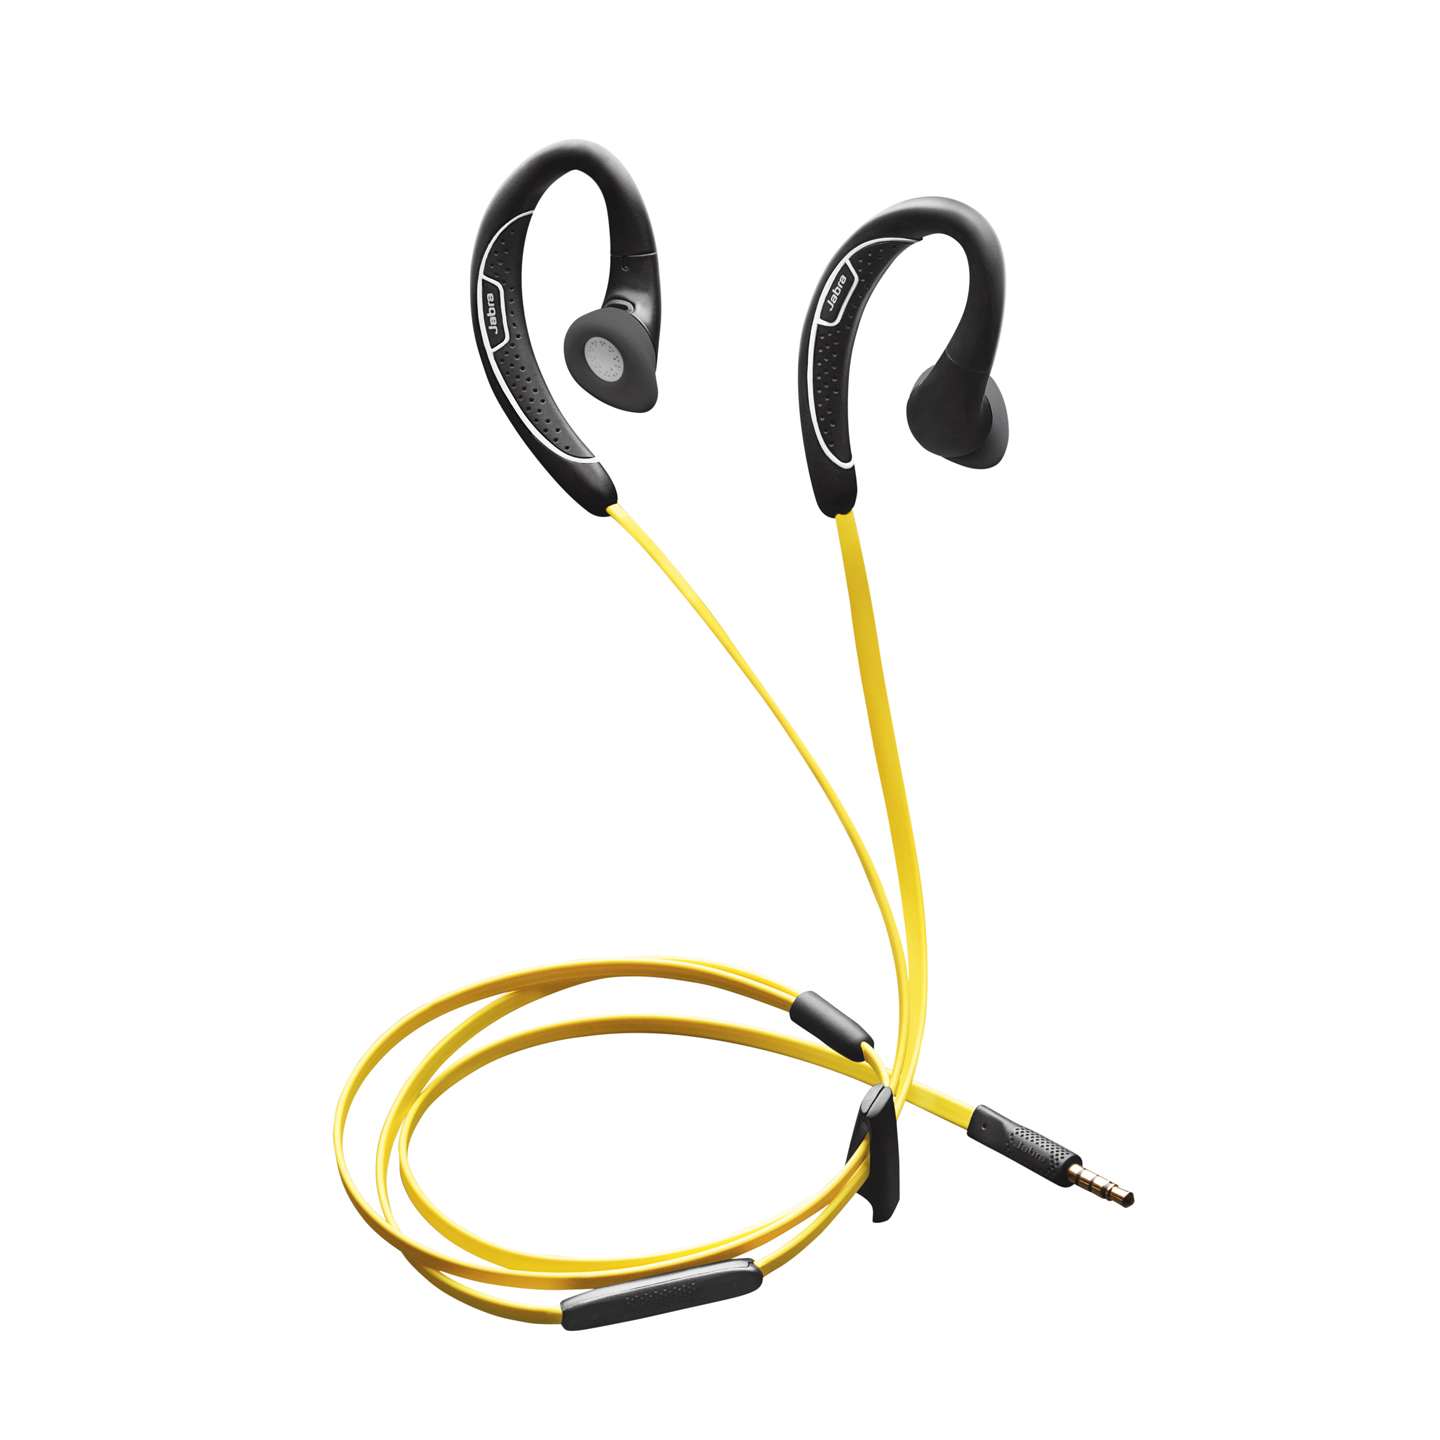 Jabra Sport Corded Stereo Bluetooth HF Black/Yellow (EU Blister)